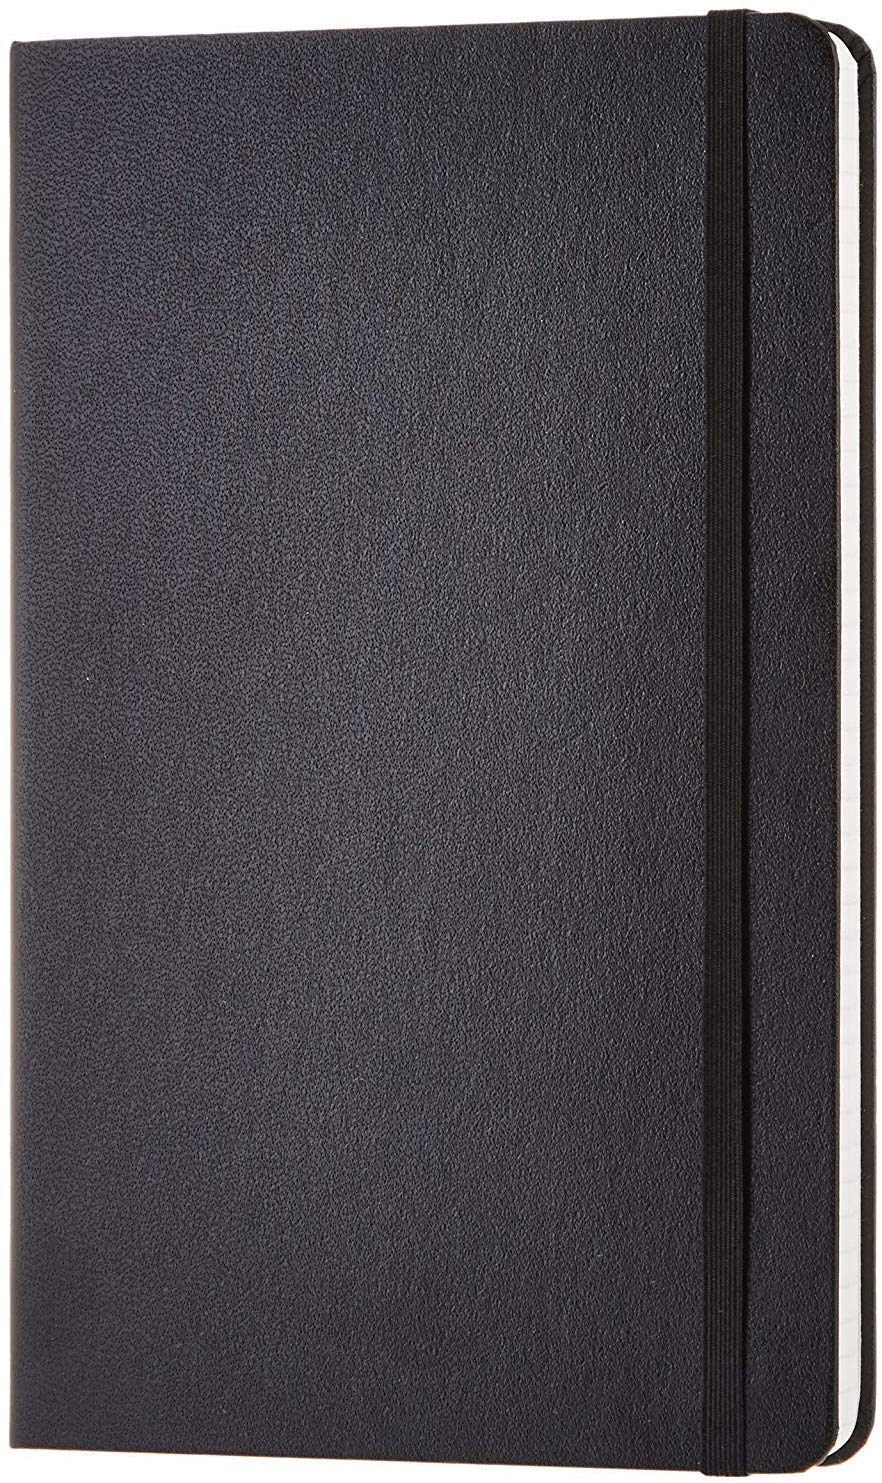 Amazon Basics Classic Grid Notebook, 240 Pages, Hardcover - Squared